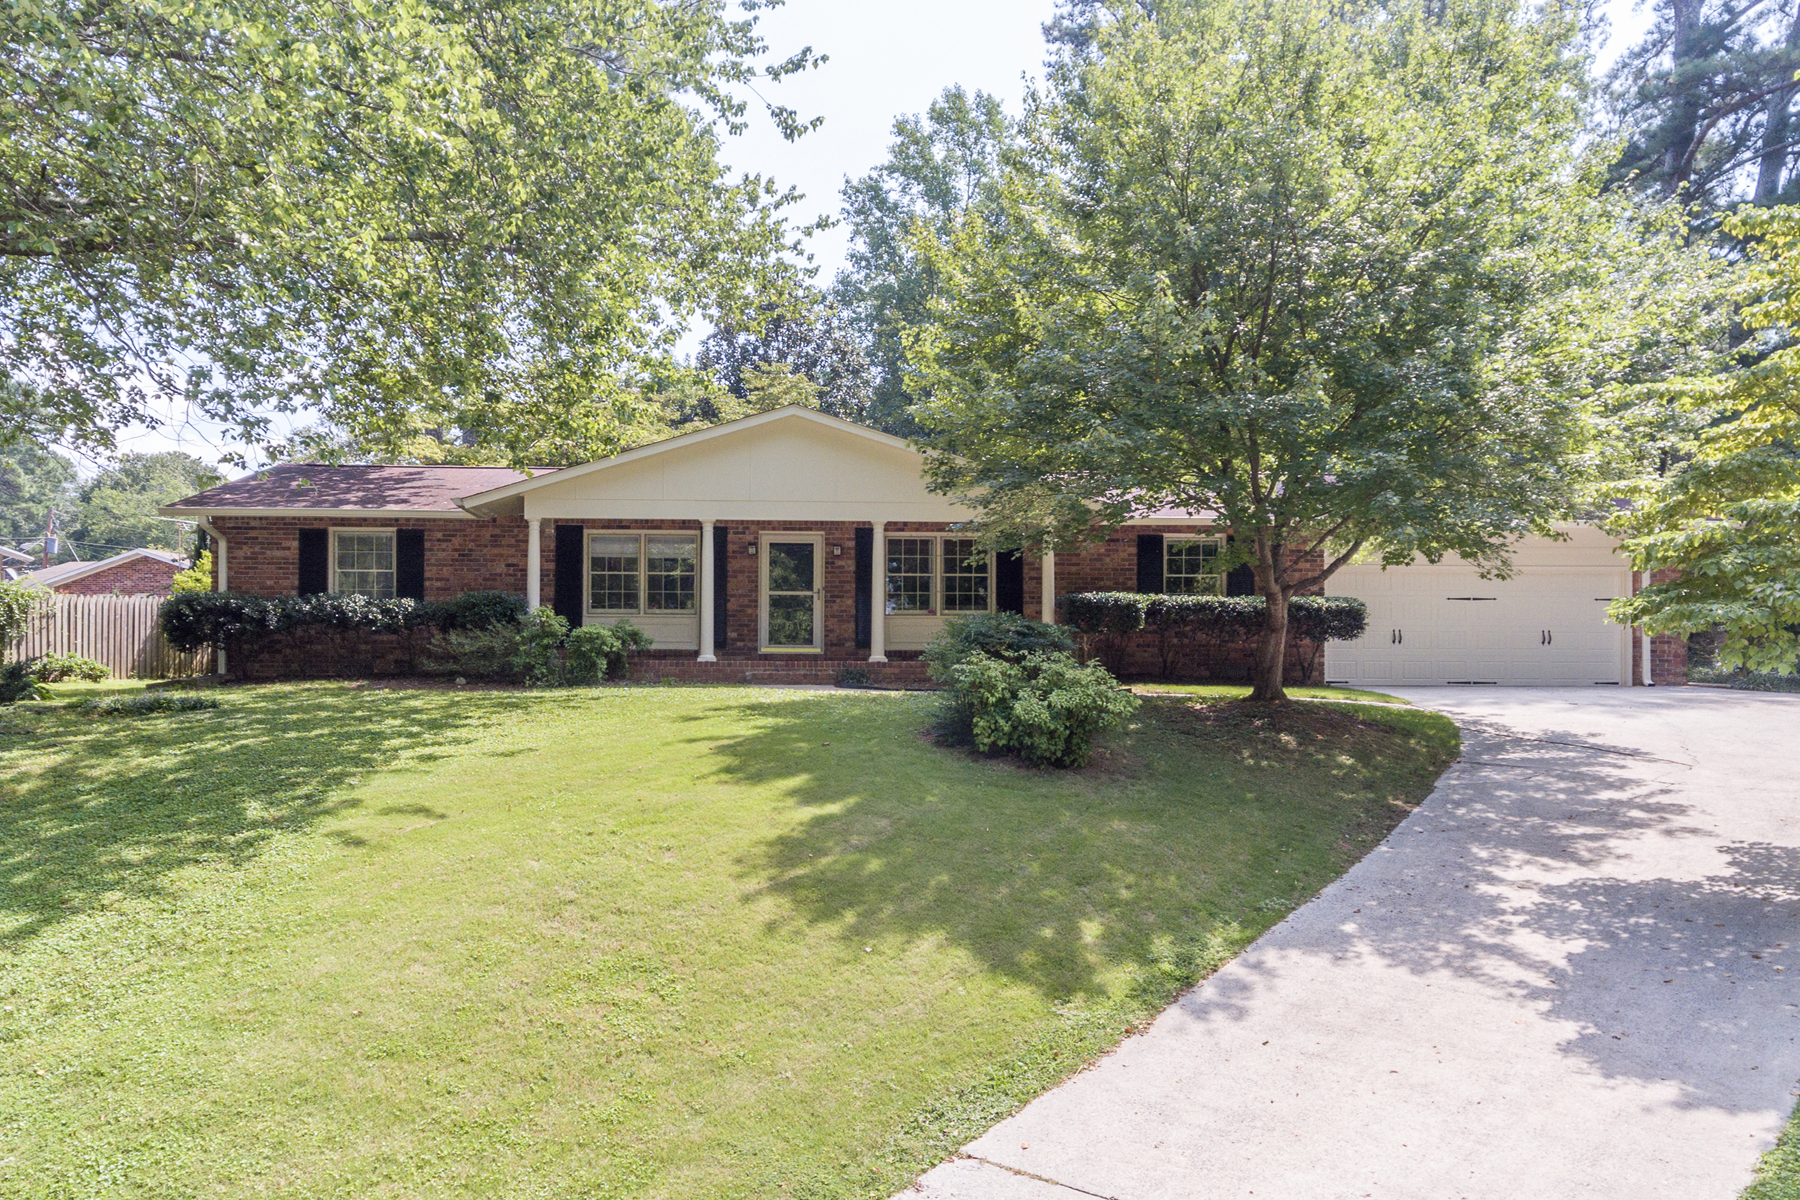 Single Family Home for Sale at Lovely Four Sided Brick Ranch In Huntley Hills 4143 Commodore Drive Chamblee, Georgia, 30341 United States